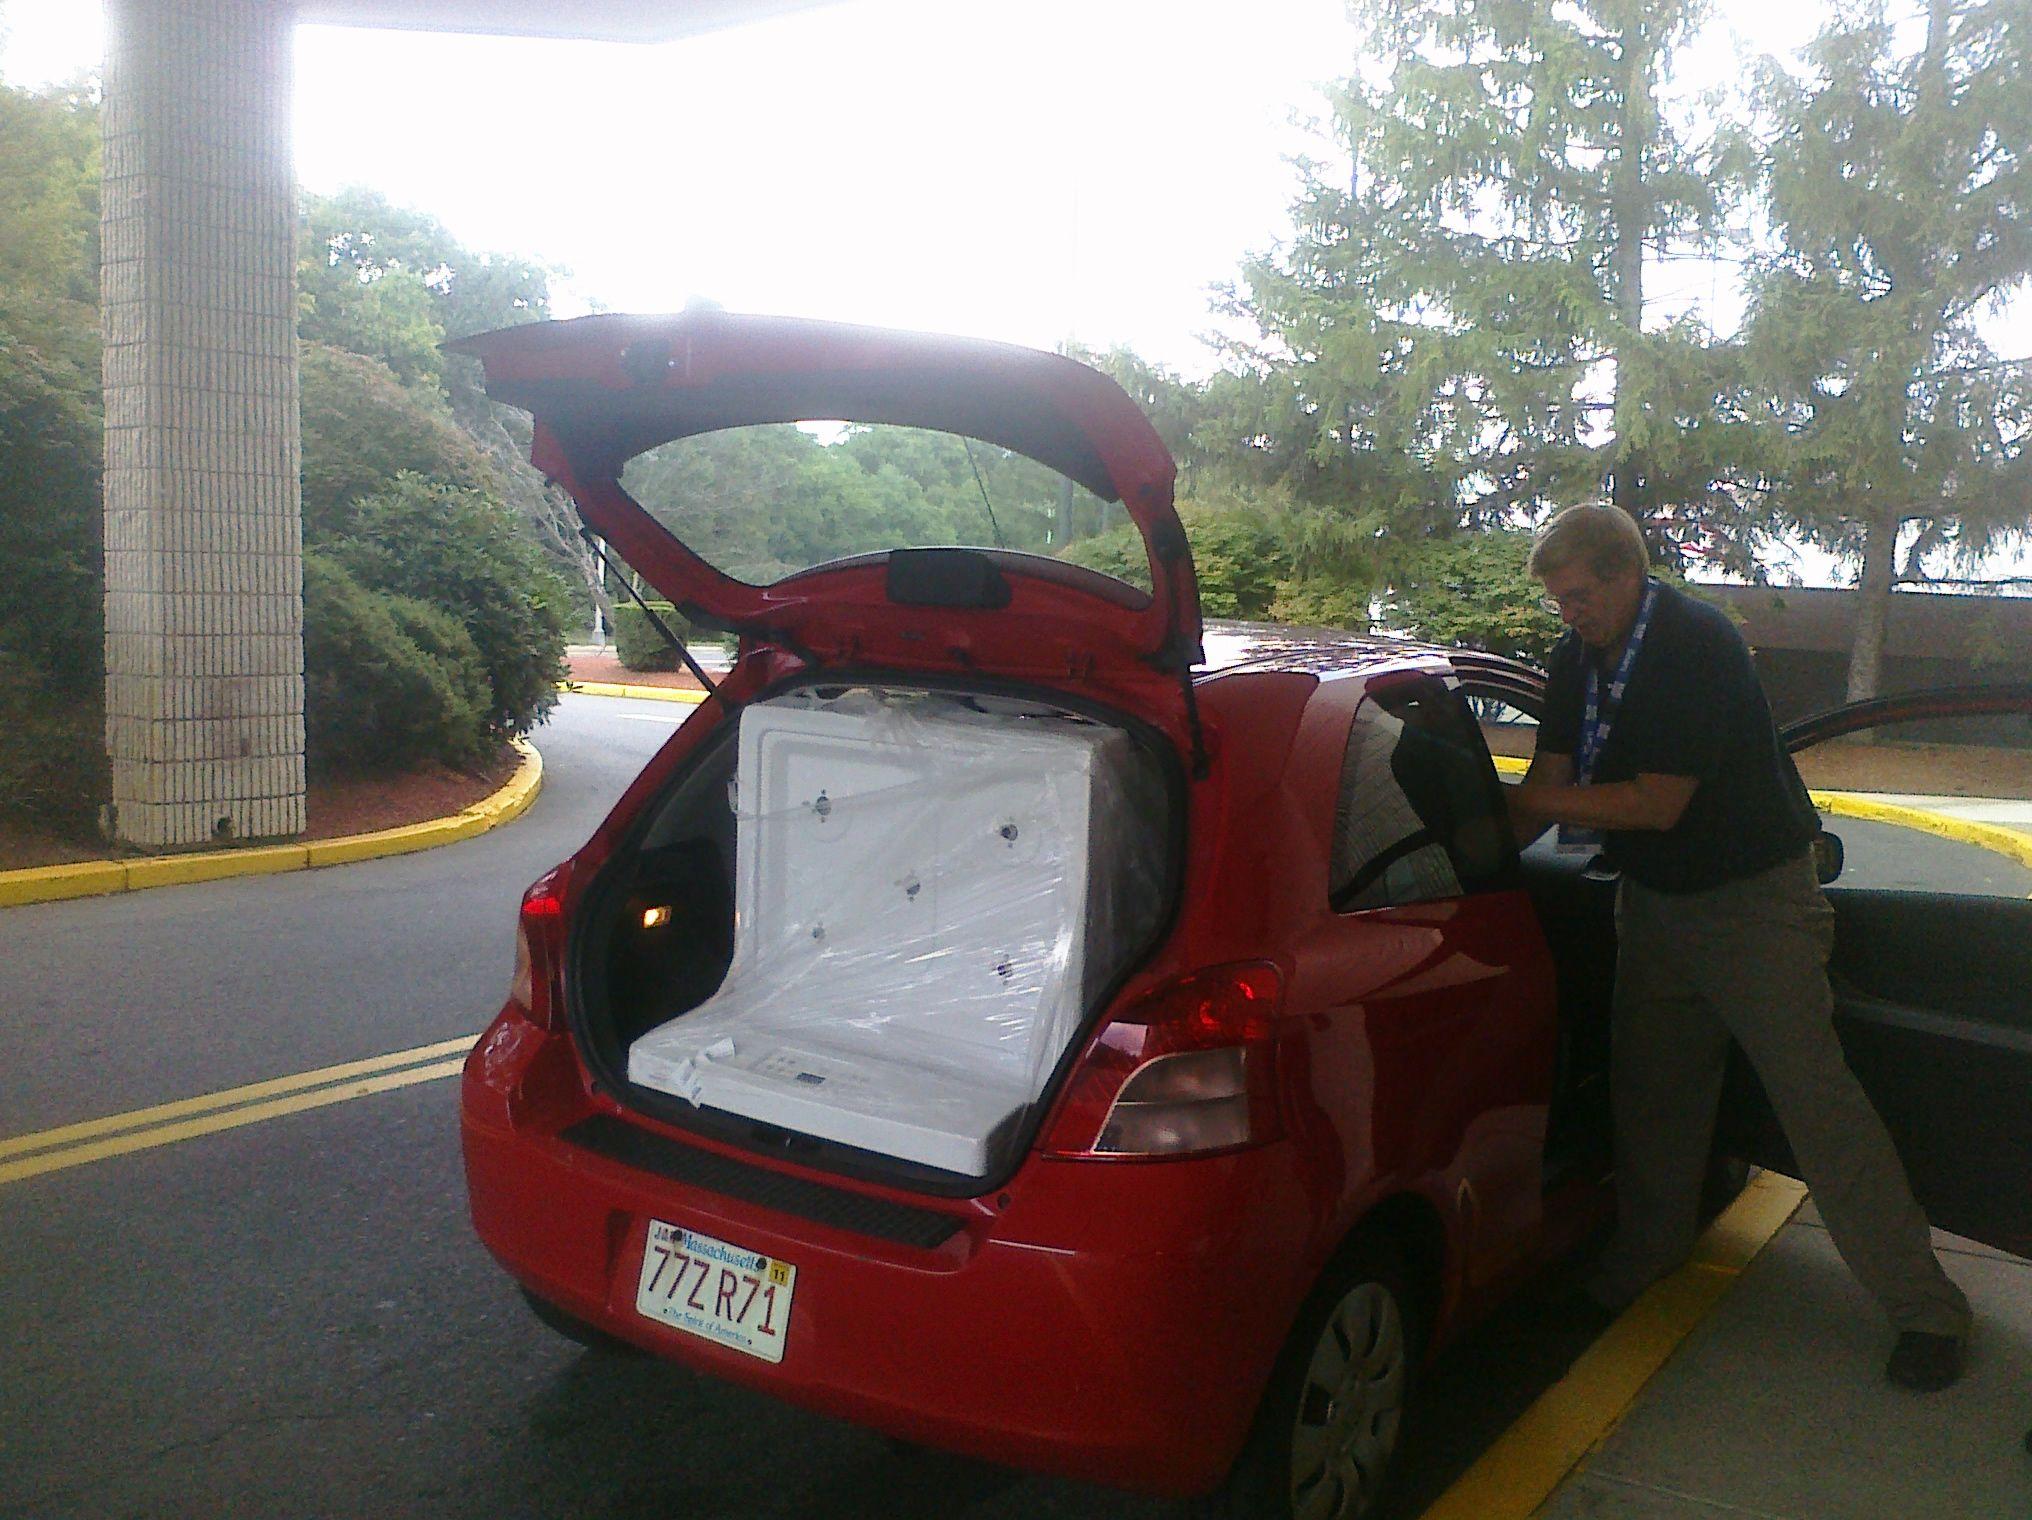 A 30 Inch Standard Range Oven Stove Fits Into The Back Of A Toyota Yaris With 2 People In The Car As Tiny Studio Space Saving Apartment Tiny Studio Apartments